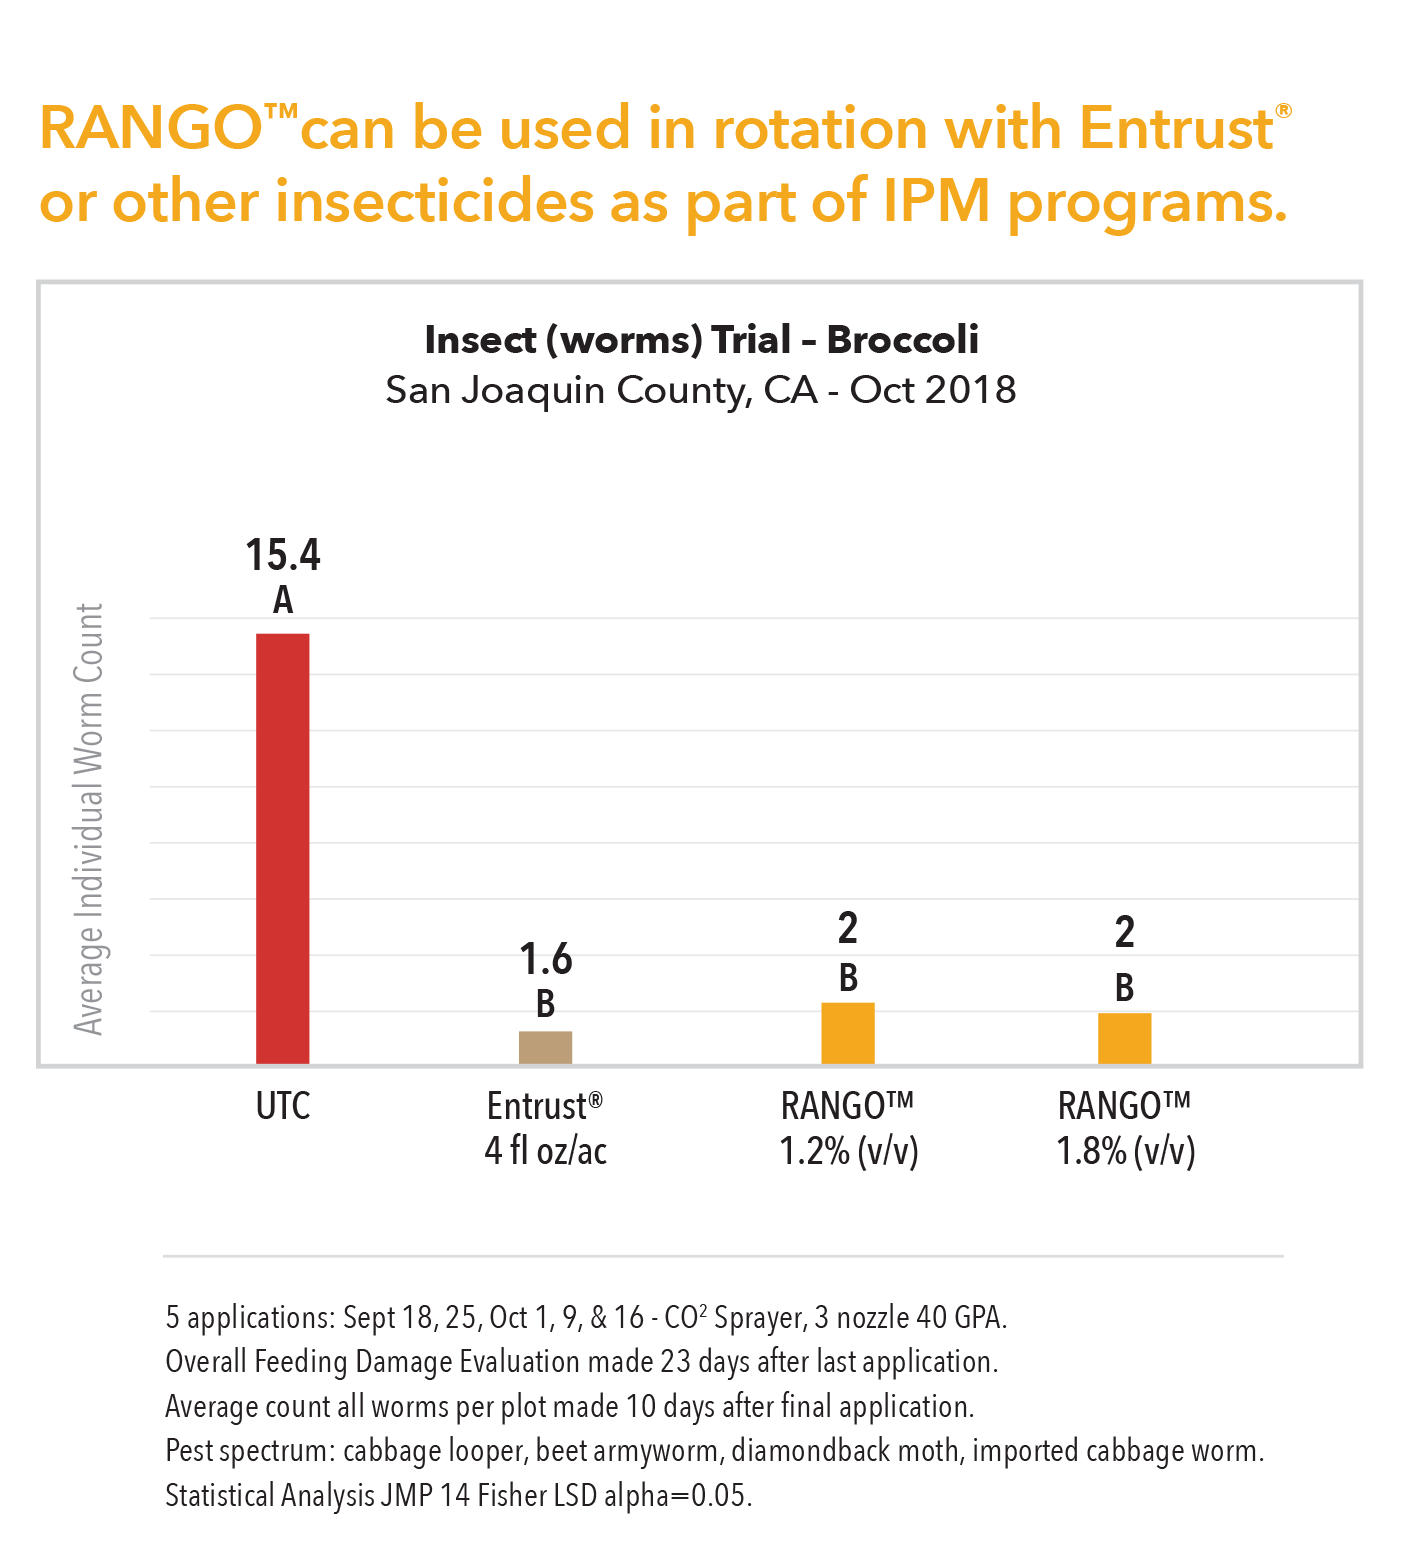 Rango Insect Worms Trial (brocolli) chart